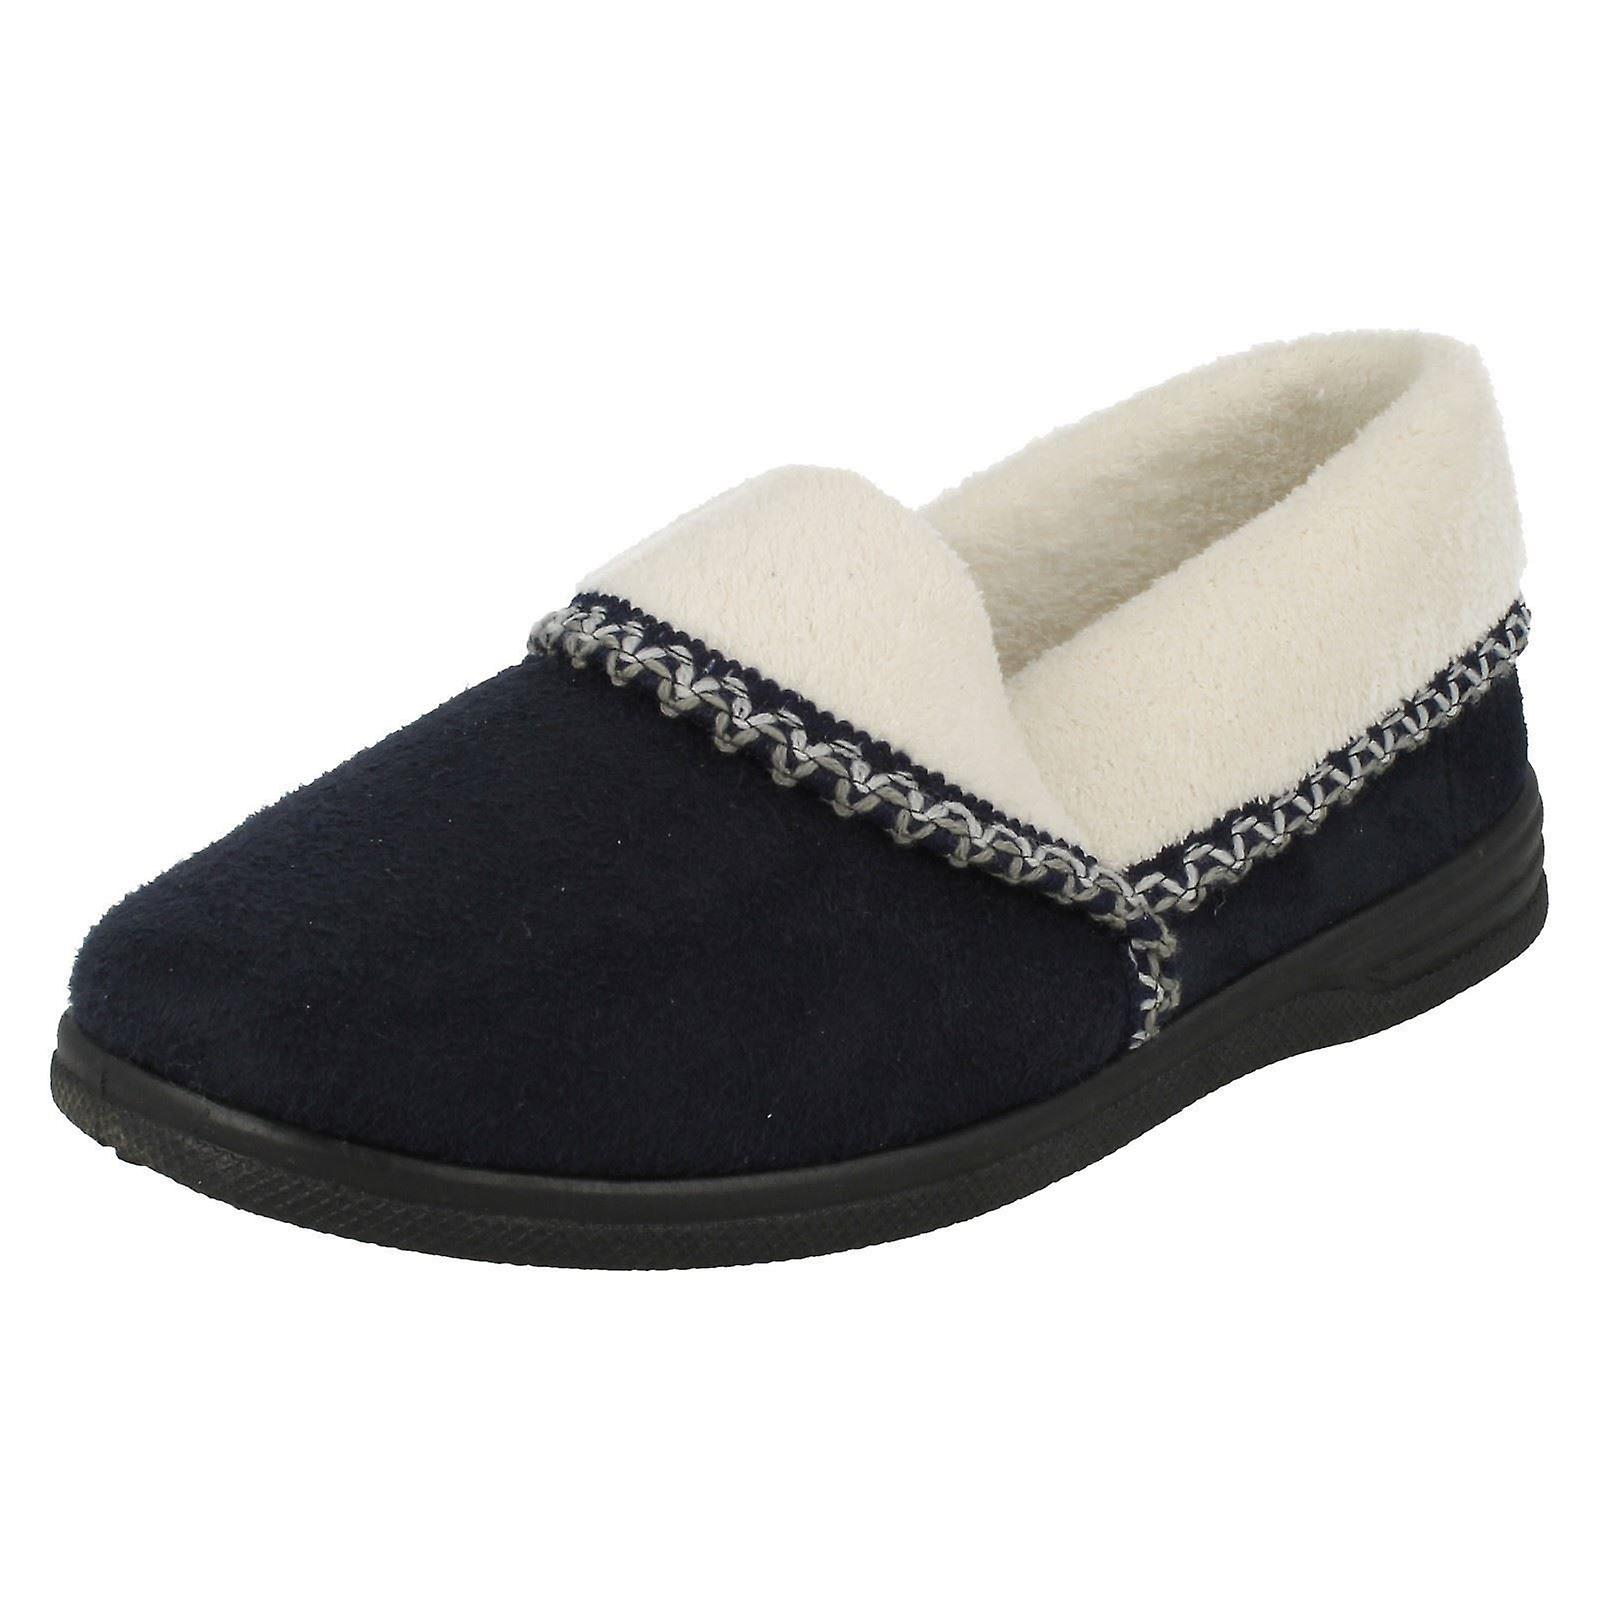 Warmlined Ila Slippers House Ladies Sandpiper BXx5g